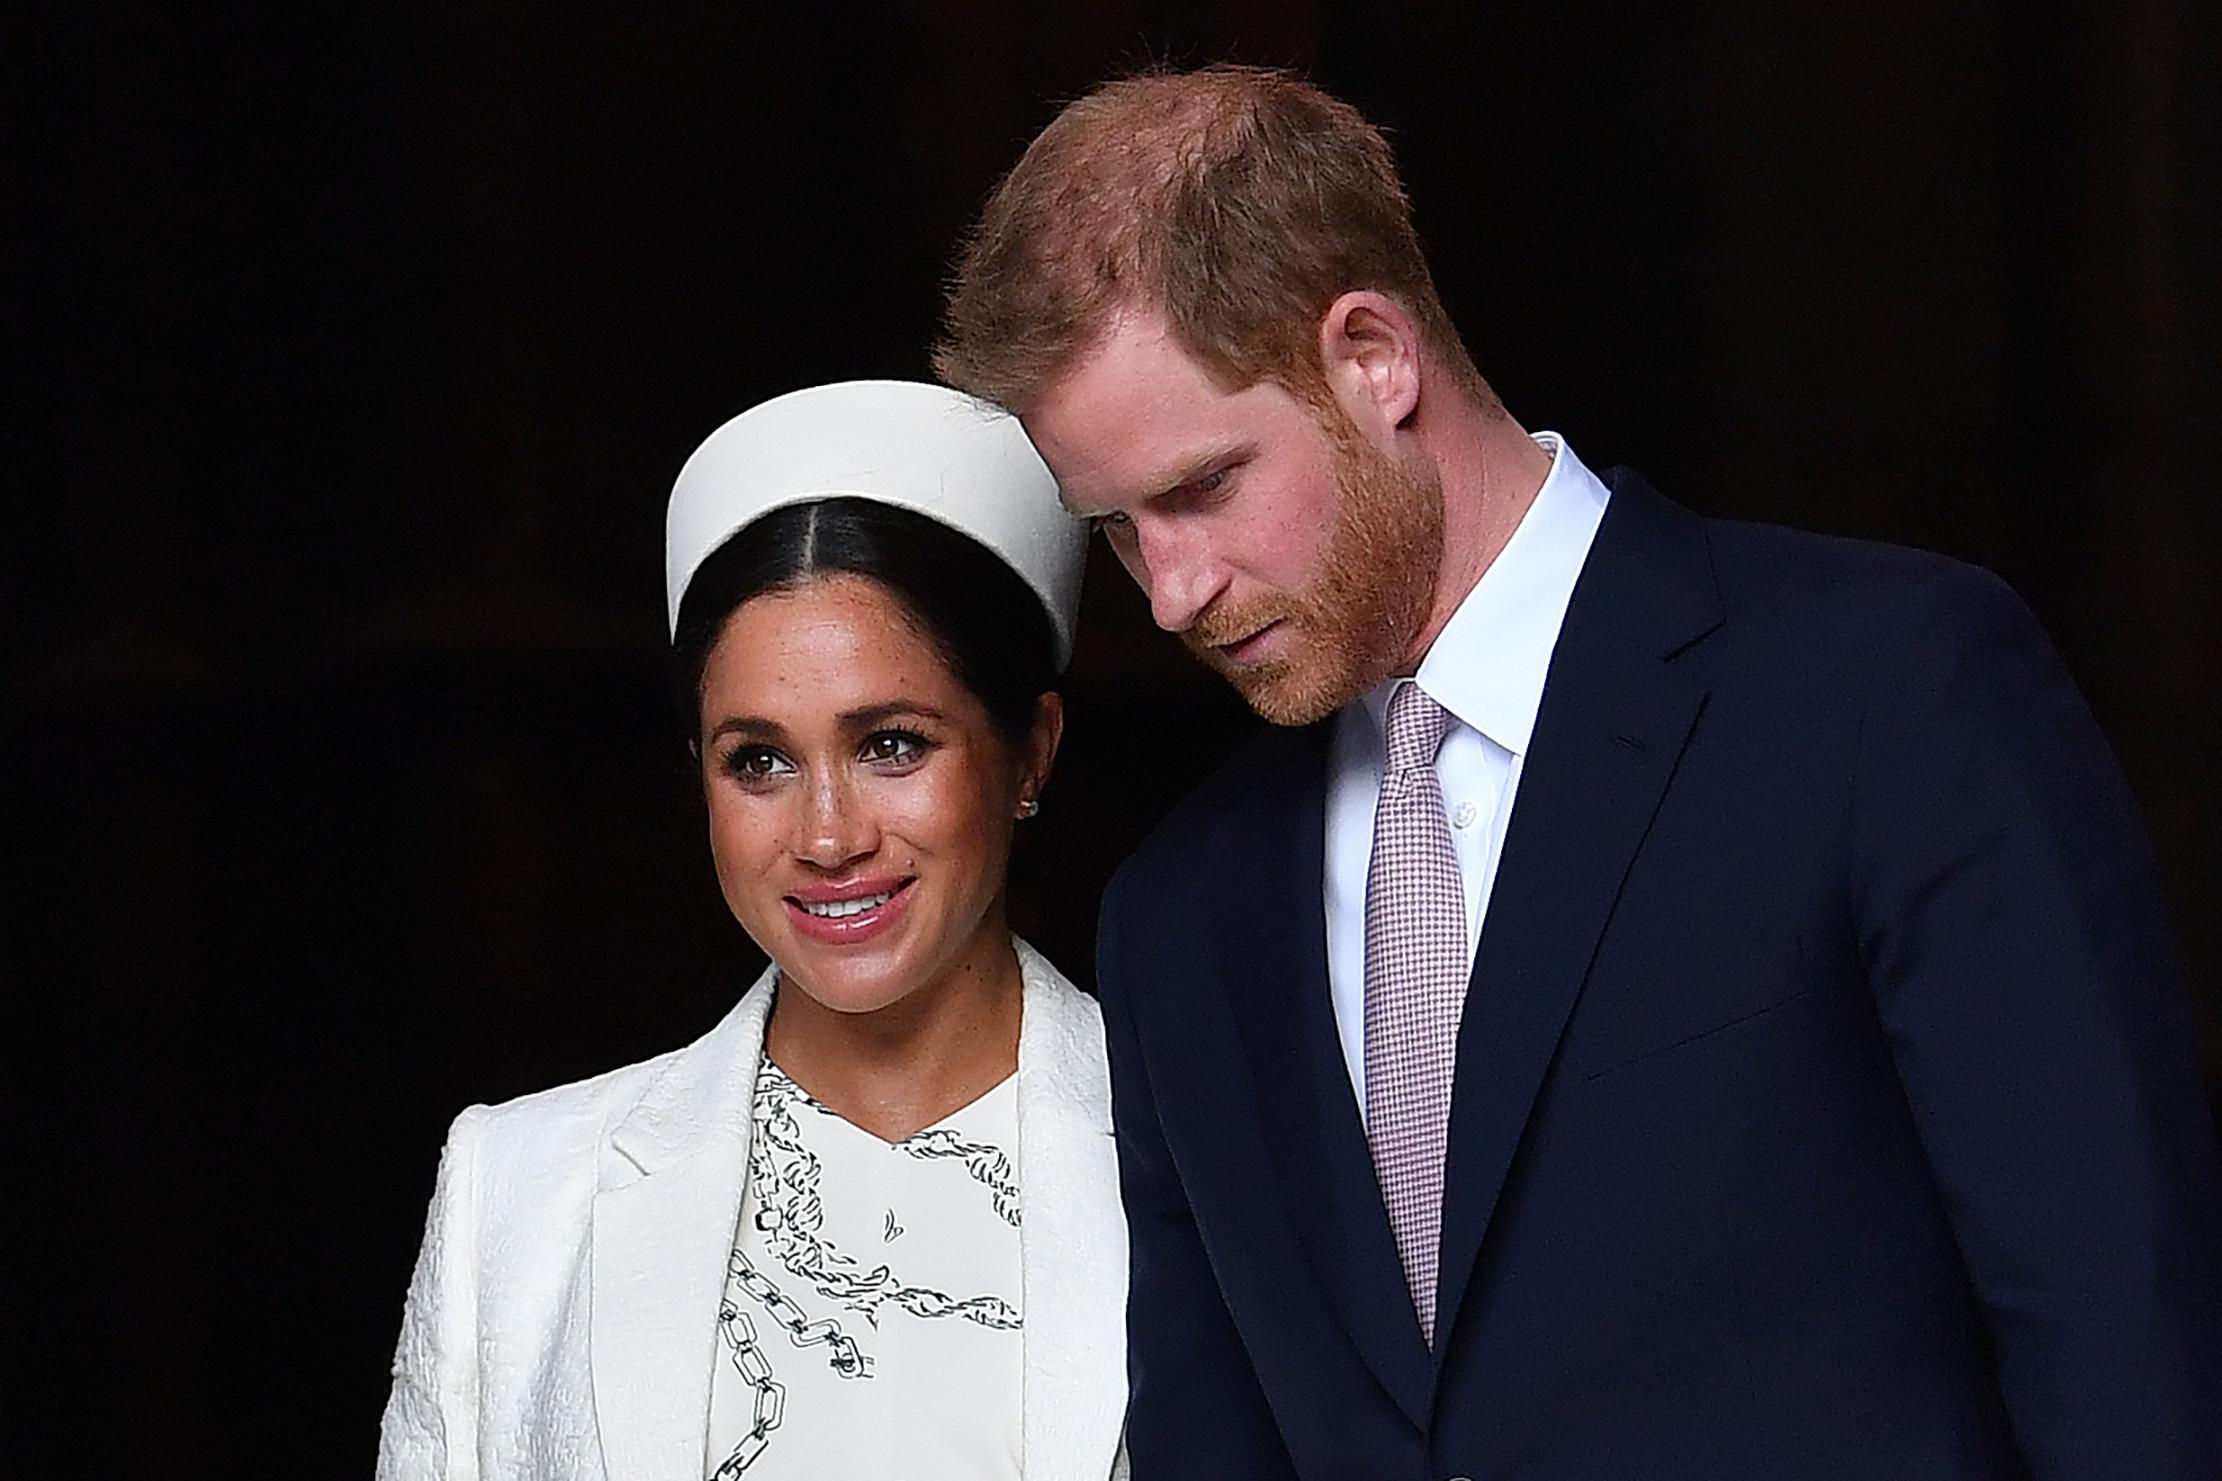 meghan markle prince harry bombshell exit queen elizabeth royal family allegedly tired of couple s issues meghan markle prince harry bombshell